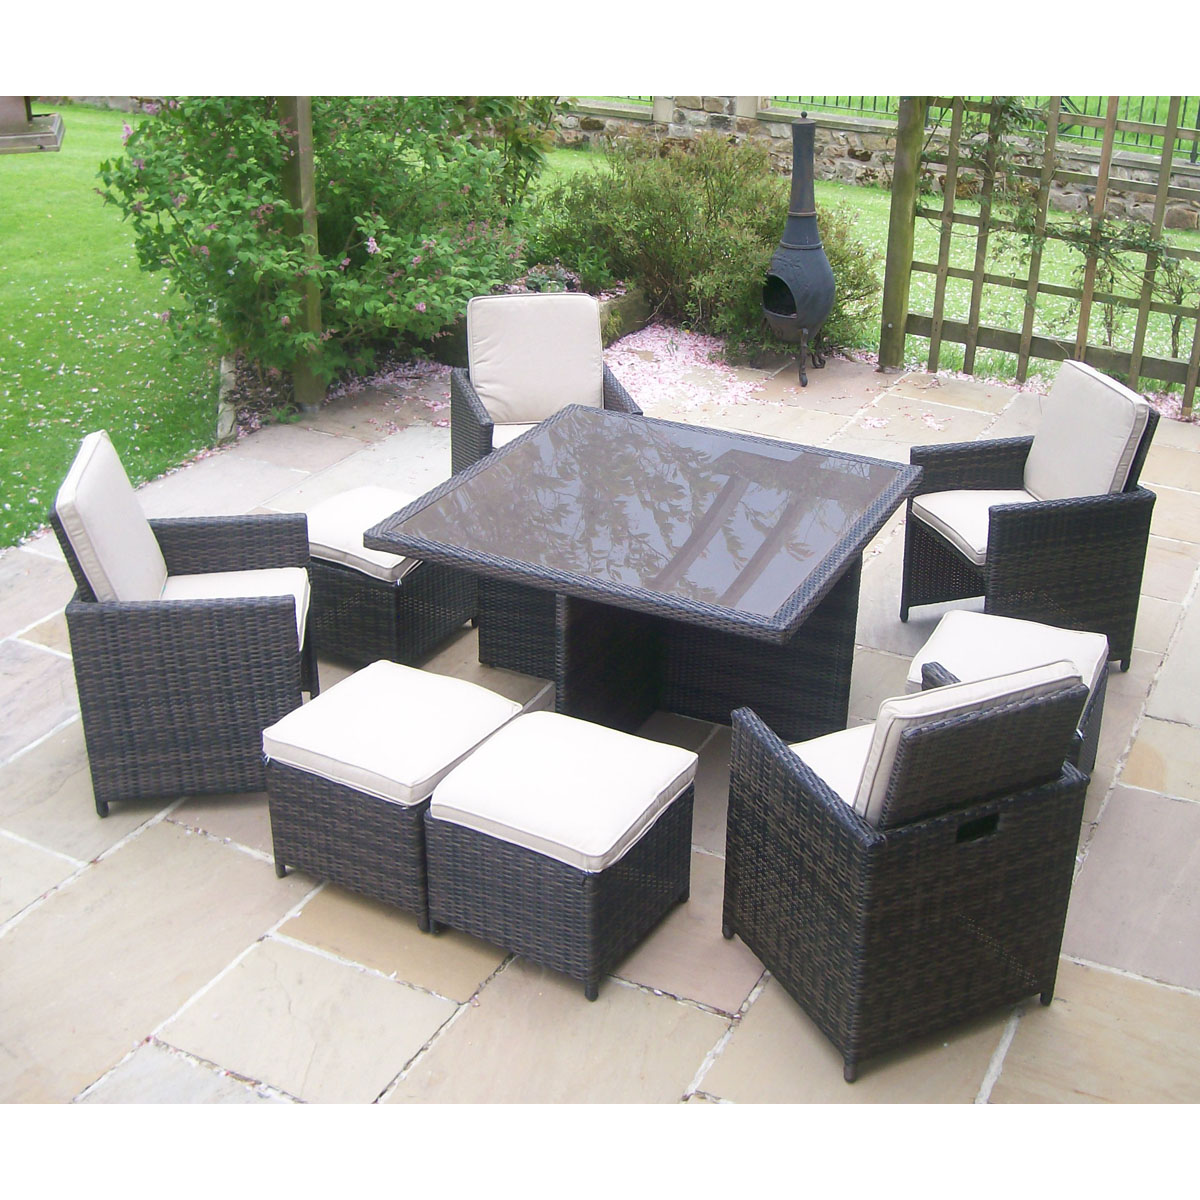 Rattan Wicker Garden Furniture Table 4 Chair Patio Set